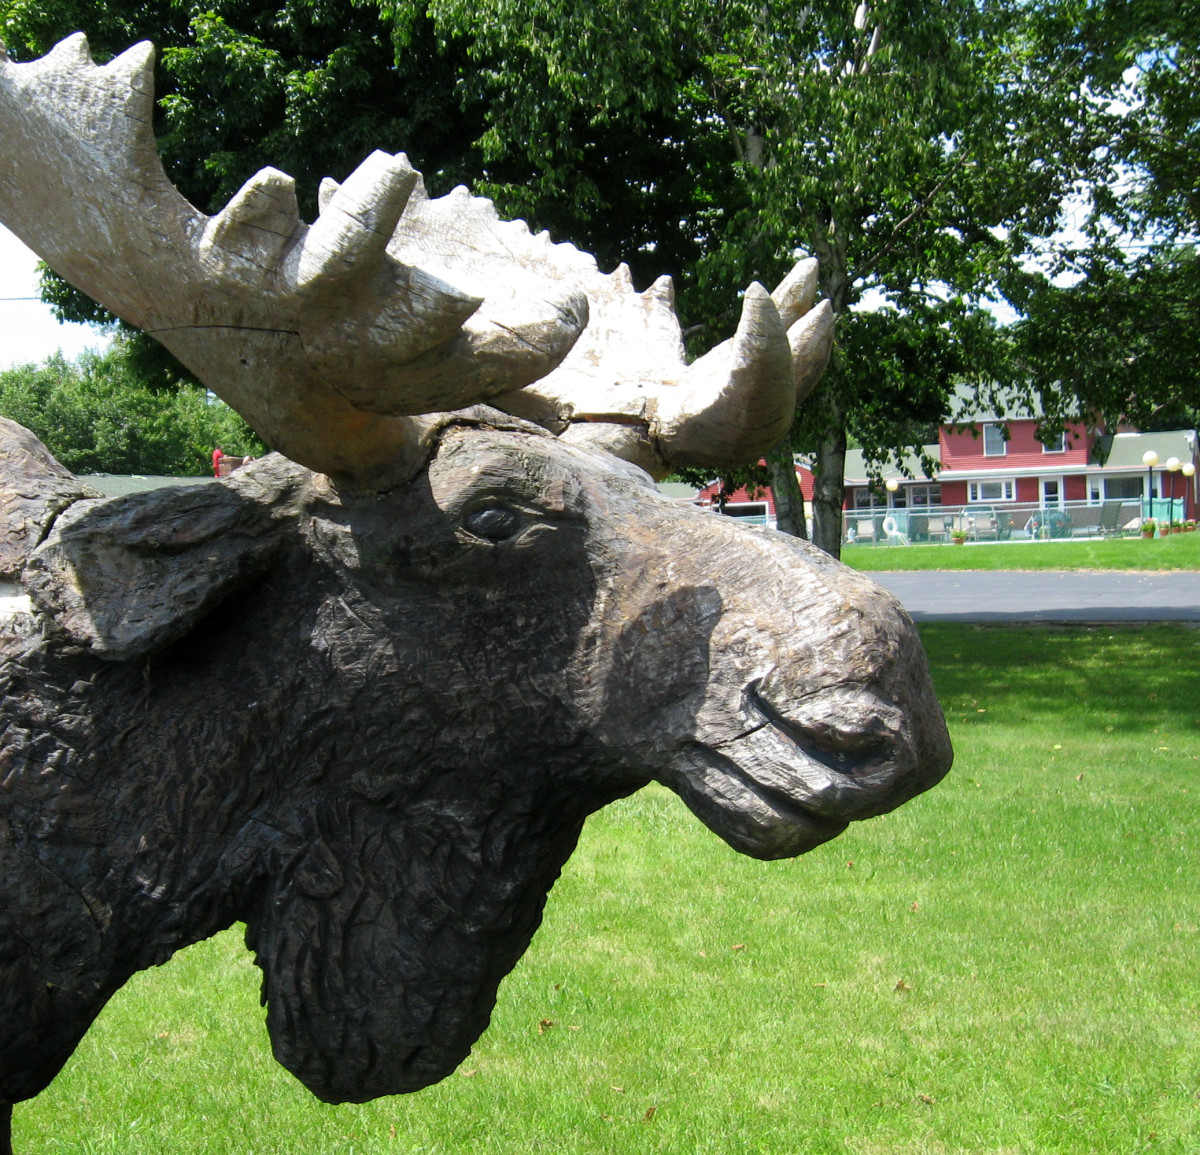 Moose are popular in New England, so you'll see statues of them in many places.